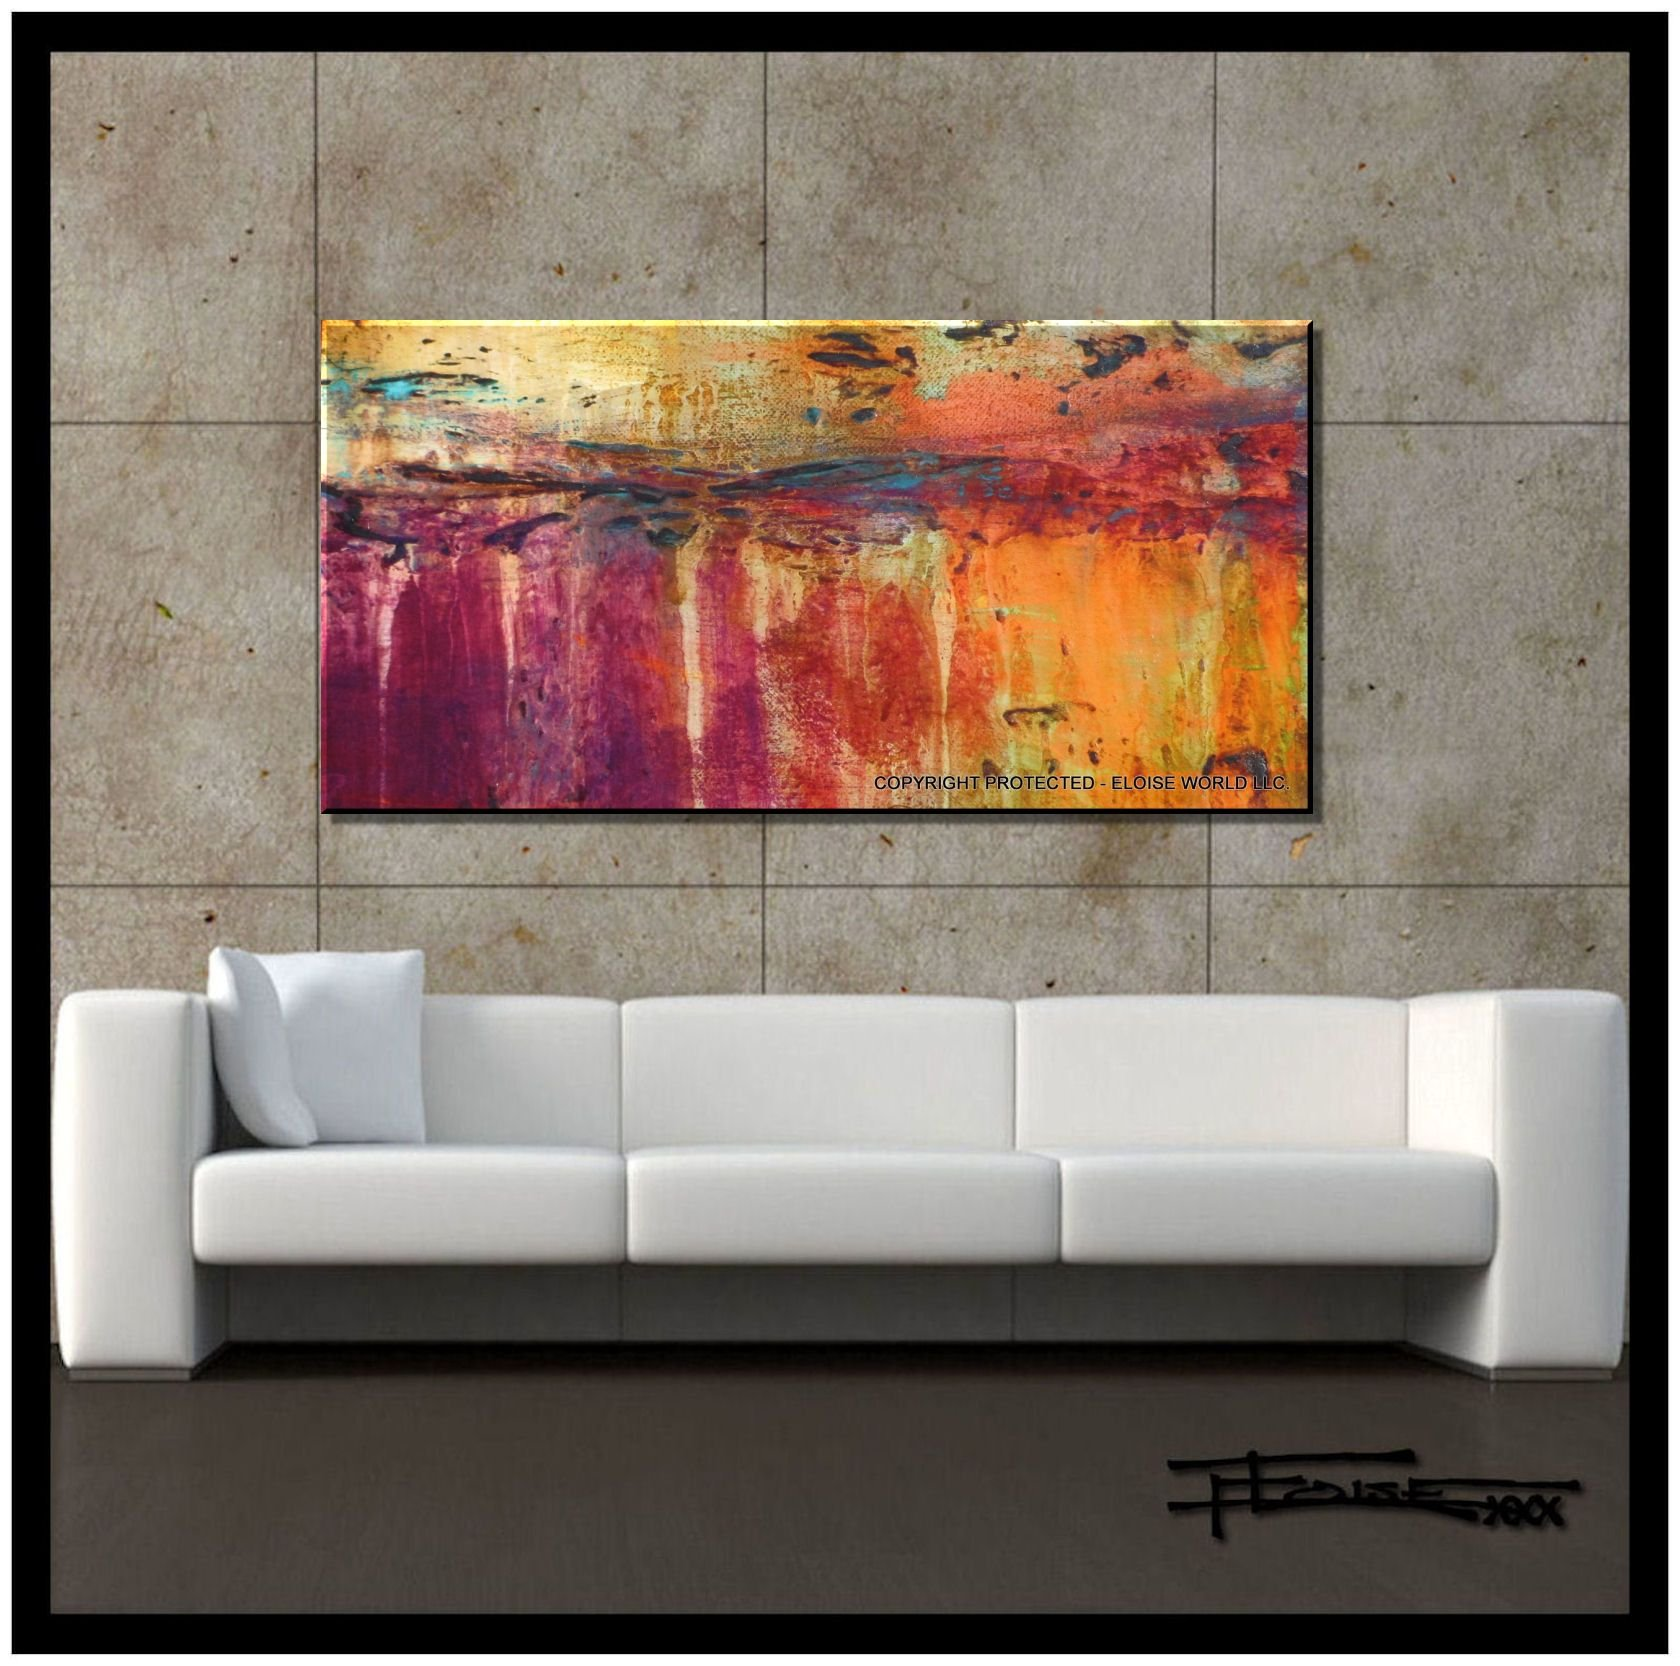 ART ON CANVAS, Modern Wall Art, Painting TRUTH Limited Edition, Hand Embellished, Giclee on canvas, Textured Abstract Painting 48 x 24 x 1.5 by ELOISE WORLD STUDIO - ELOISExxx